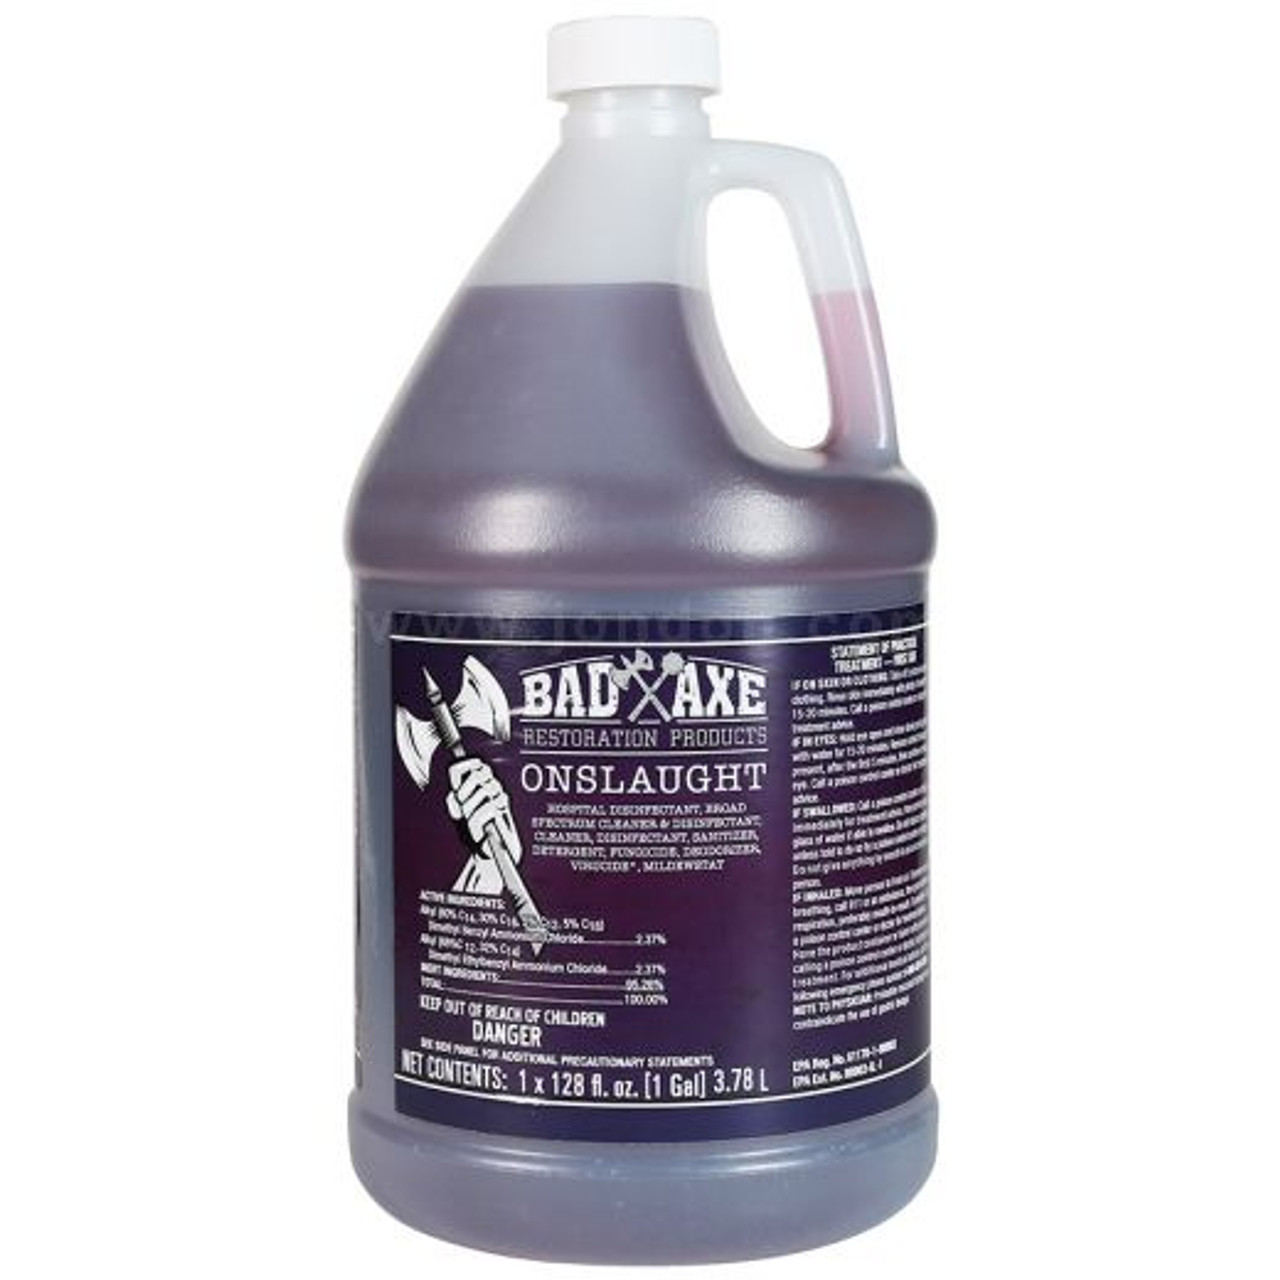 Bad Axe ONSLAUGHT Quaternary Disinfectant